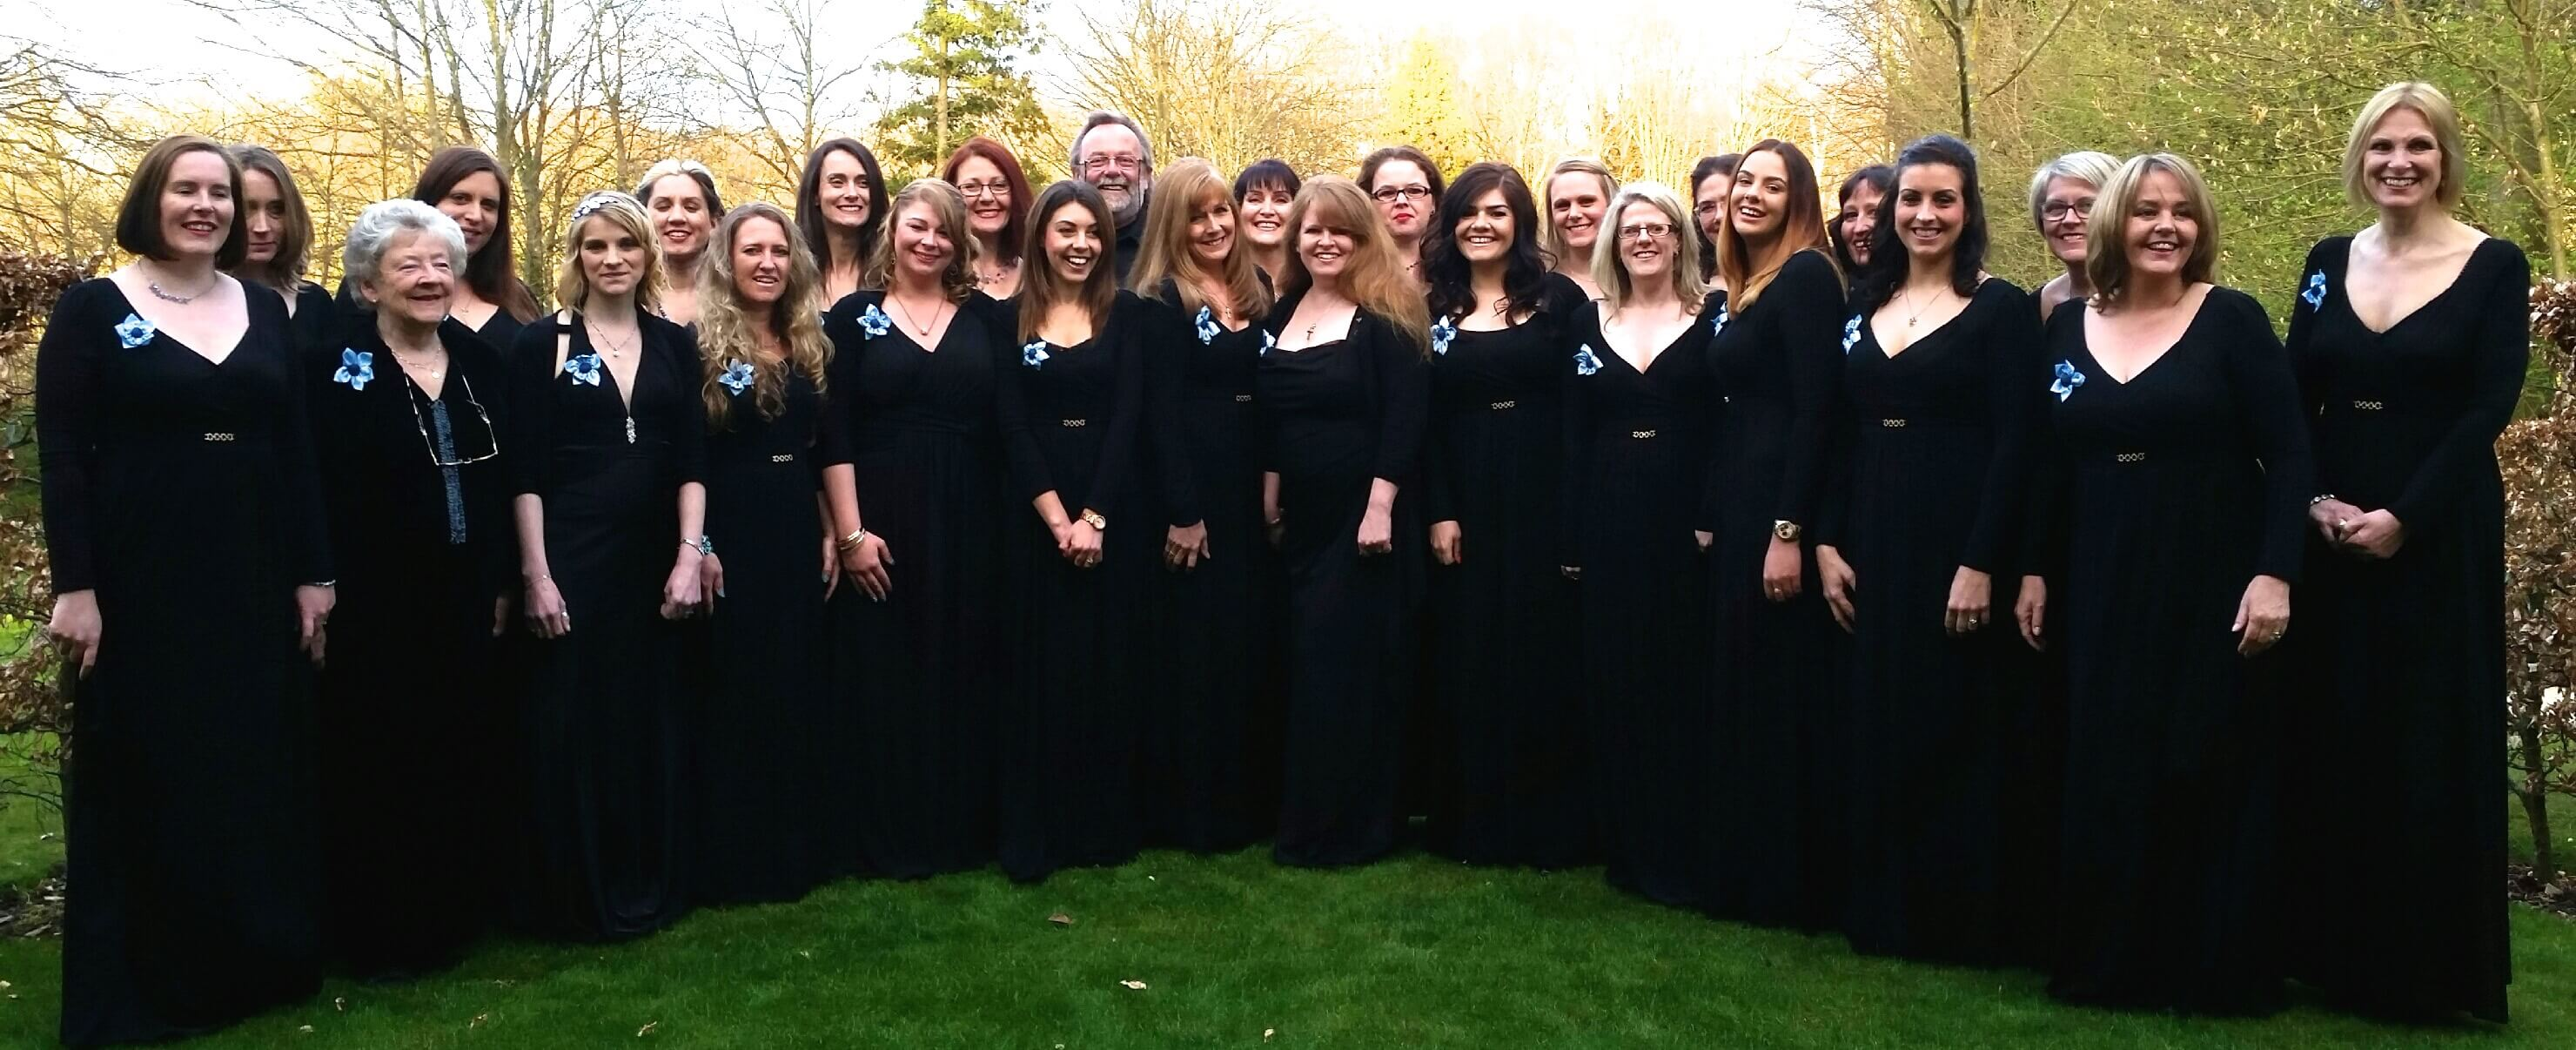 Dishforth Military Wives Choir